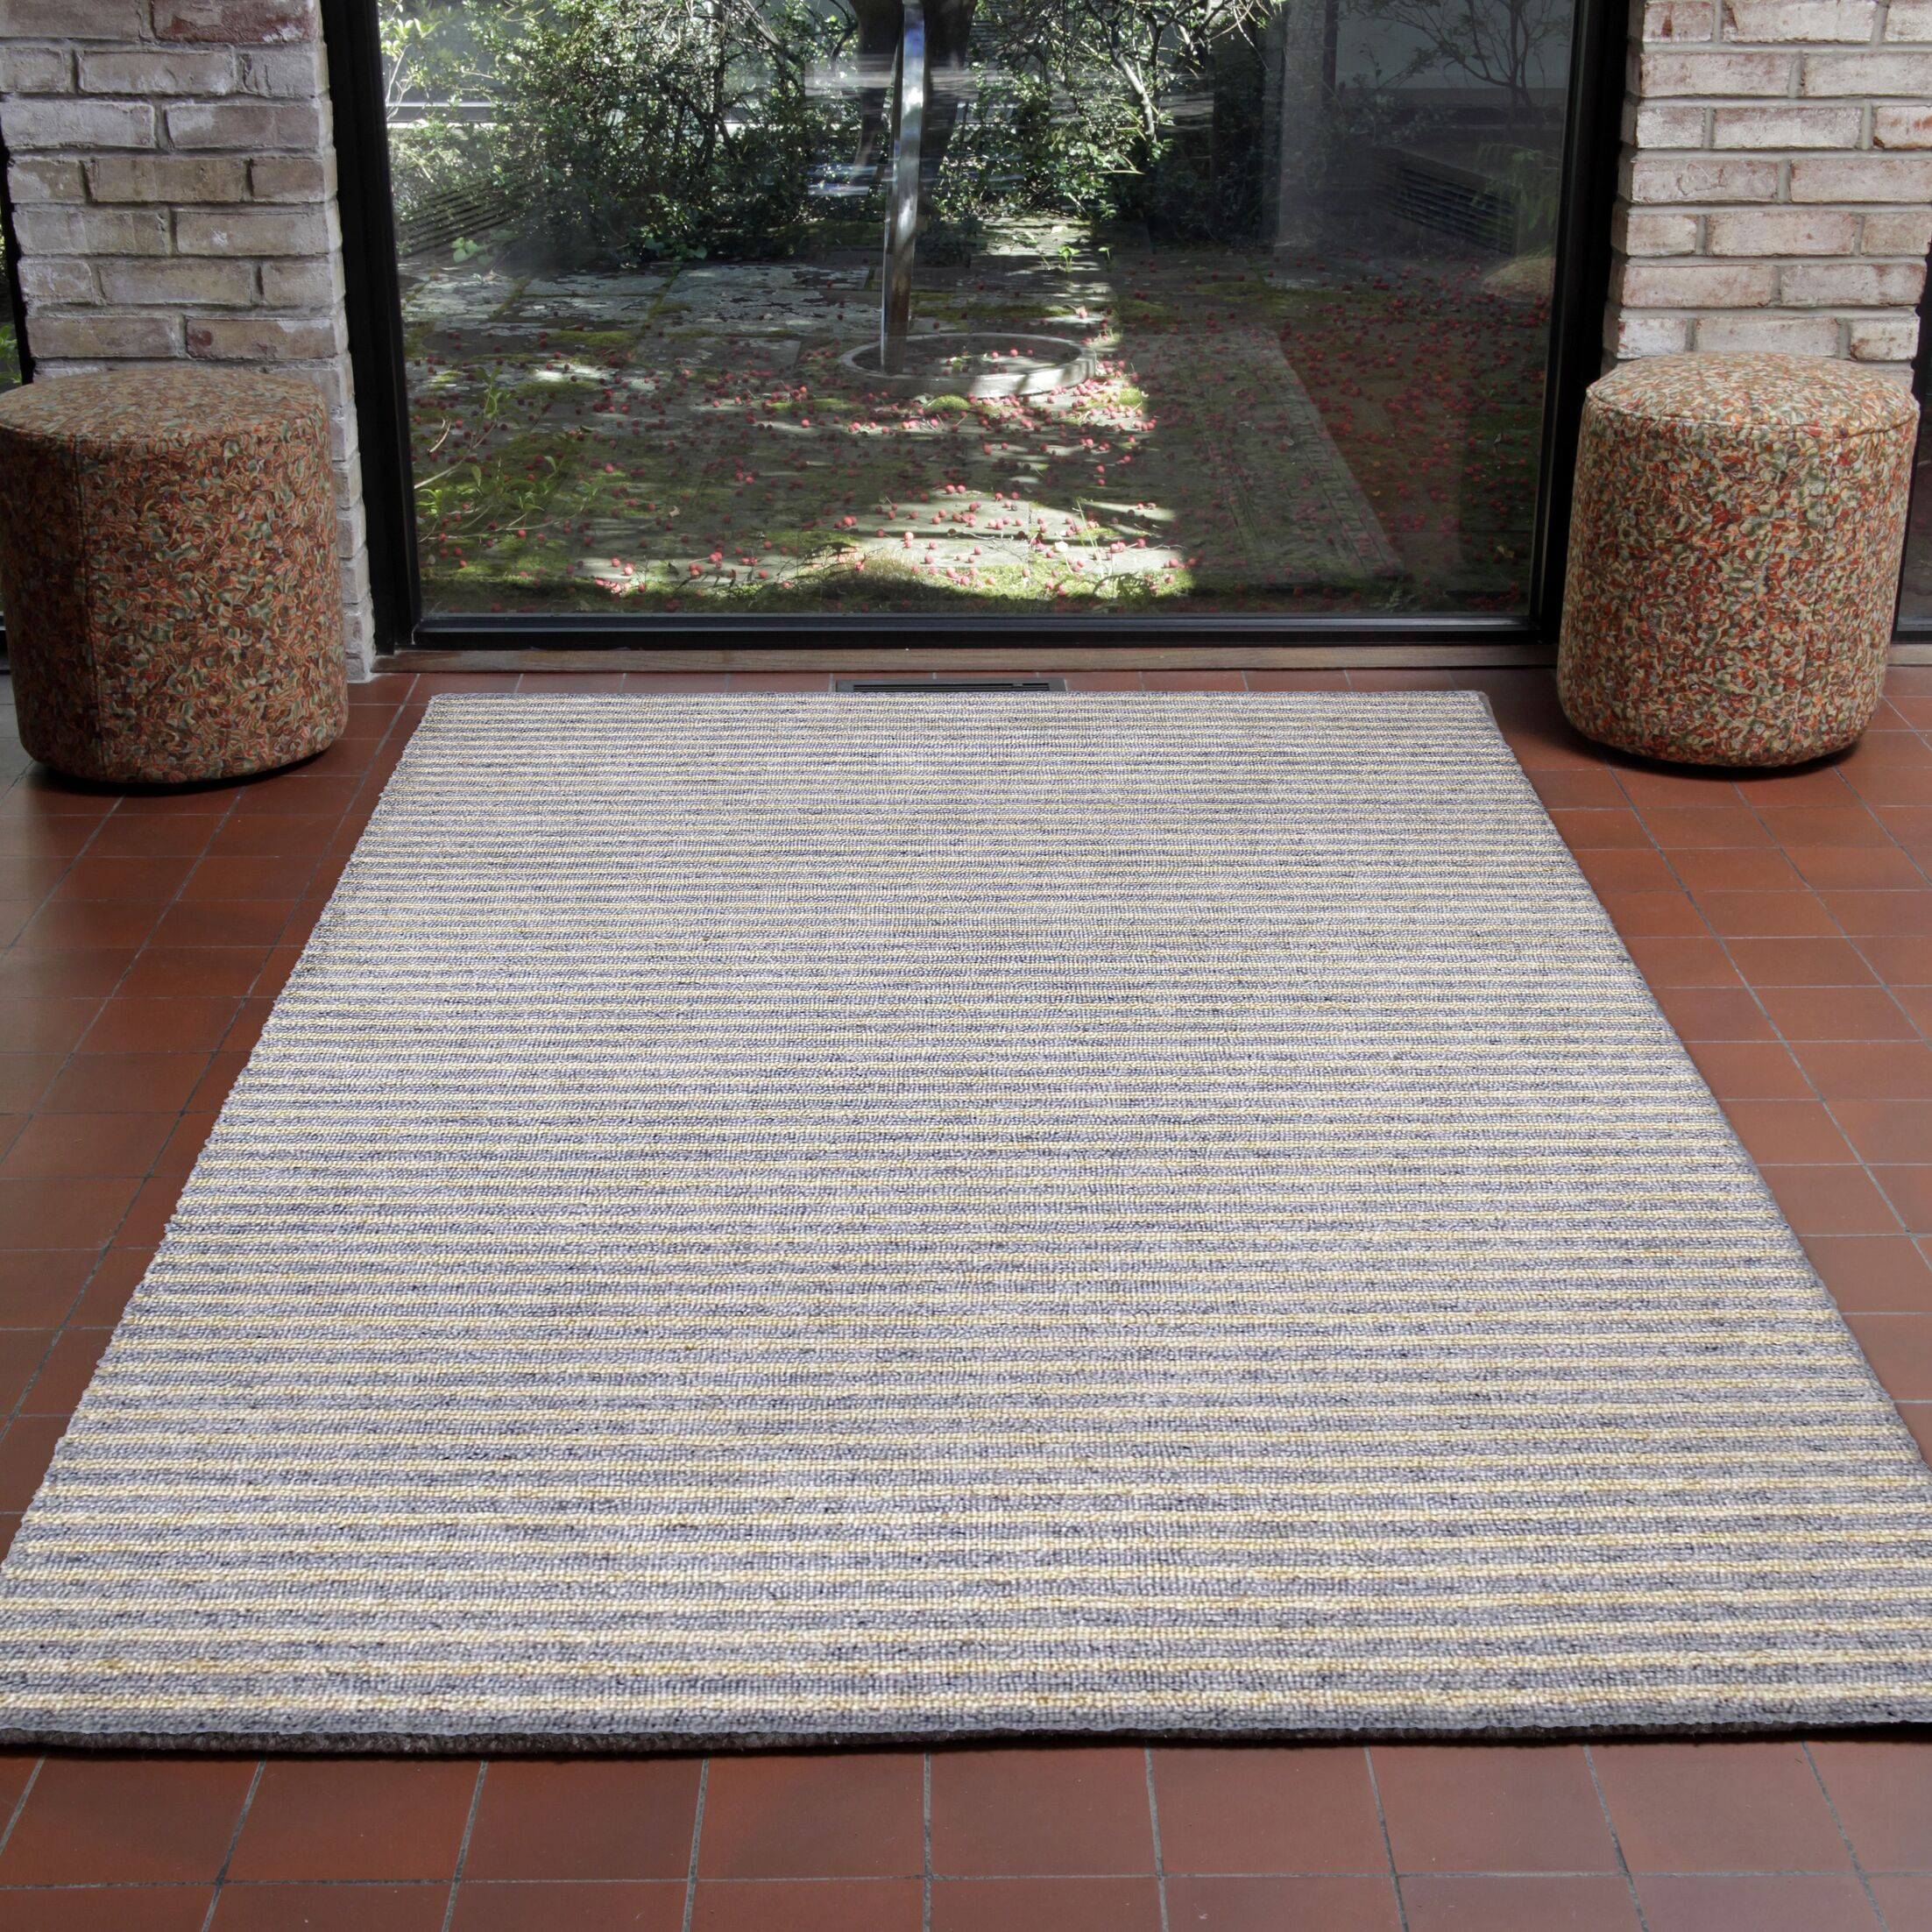 Bogard Hand-Tufted Gray Indoor/Outdoor Area Rug Rug Size: 8'3